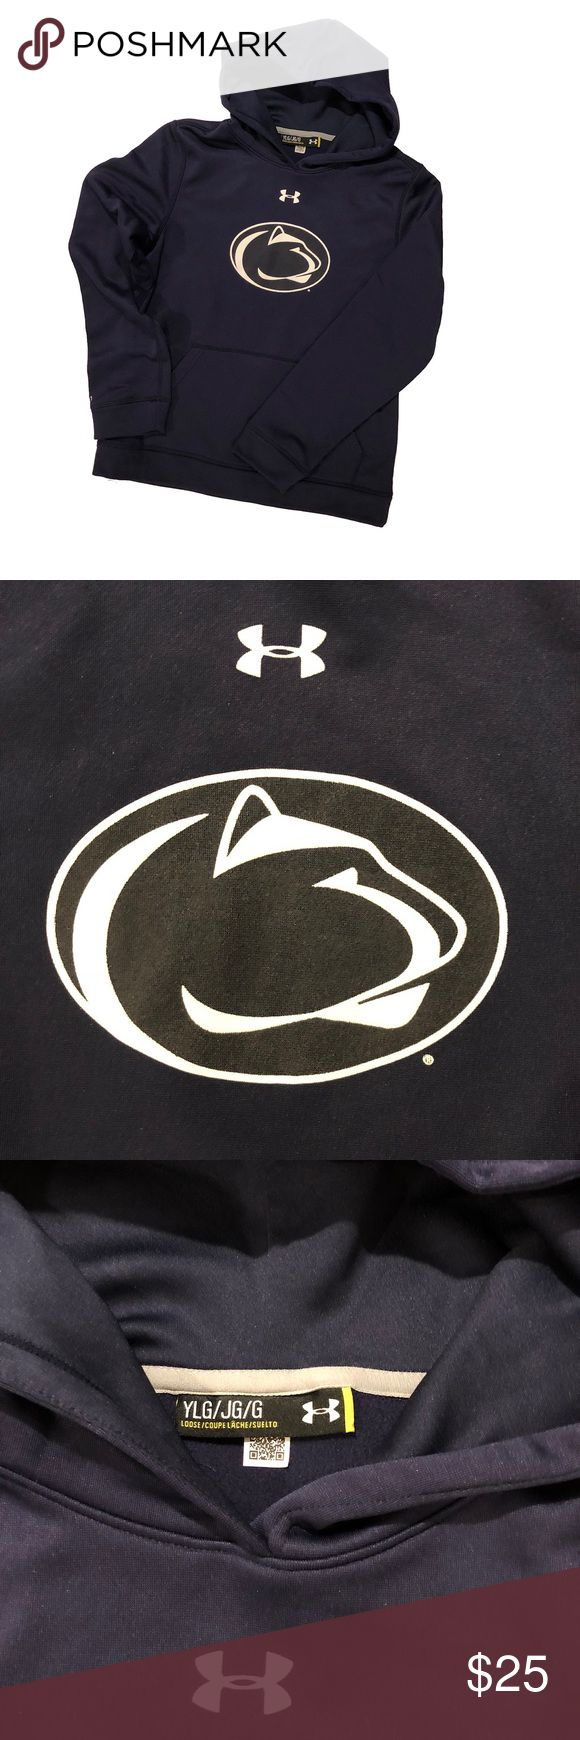 Under Armour Penn State Hoody EUC Dry fit Penn State University Hoody with pristine Nittany Lion logo on chest PSU Under Armour Shirts & Tops Sweatshirts & Hoodies